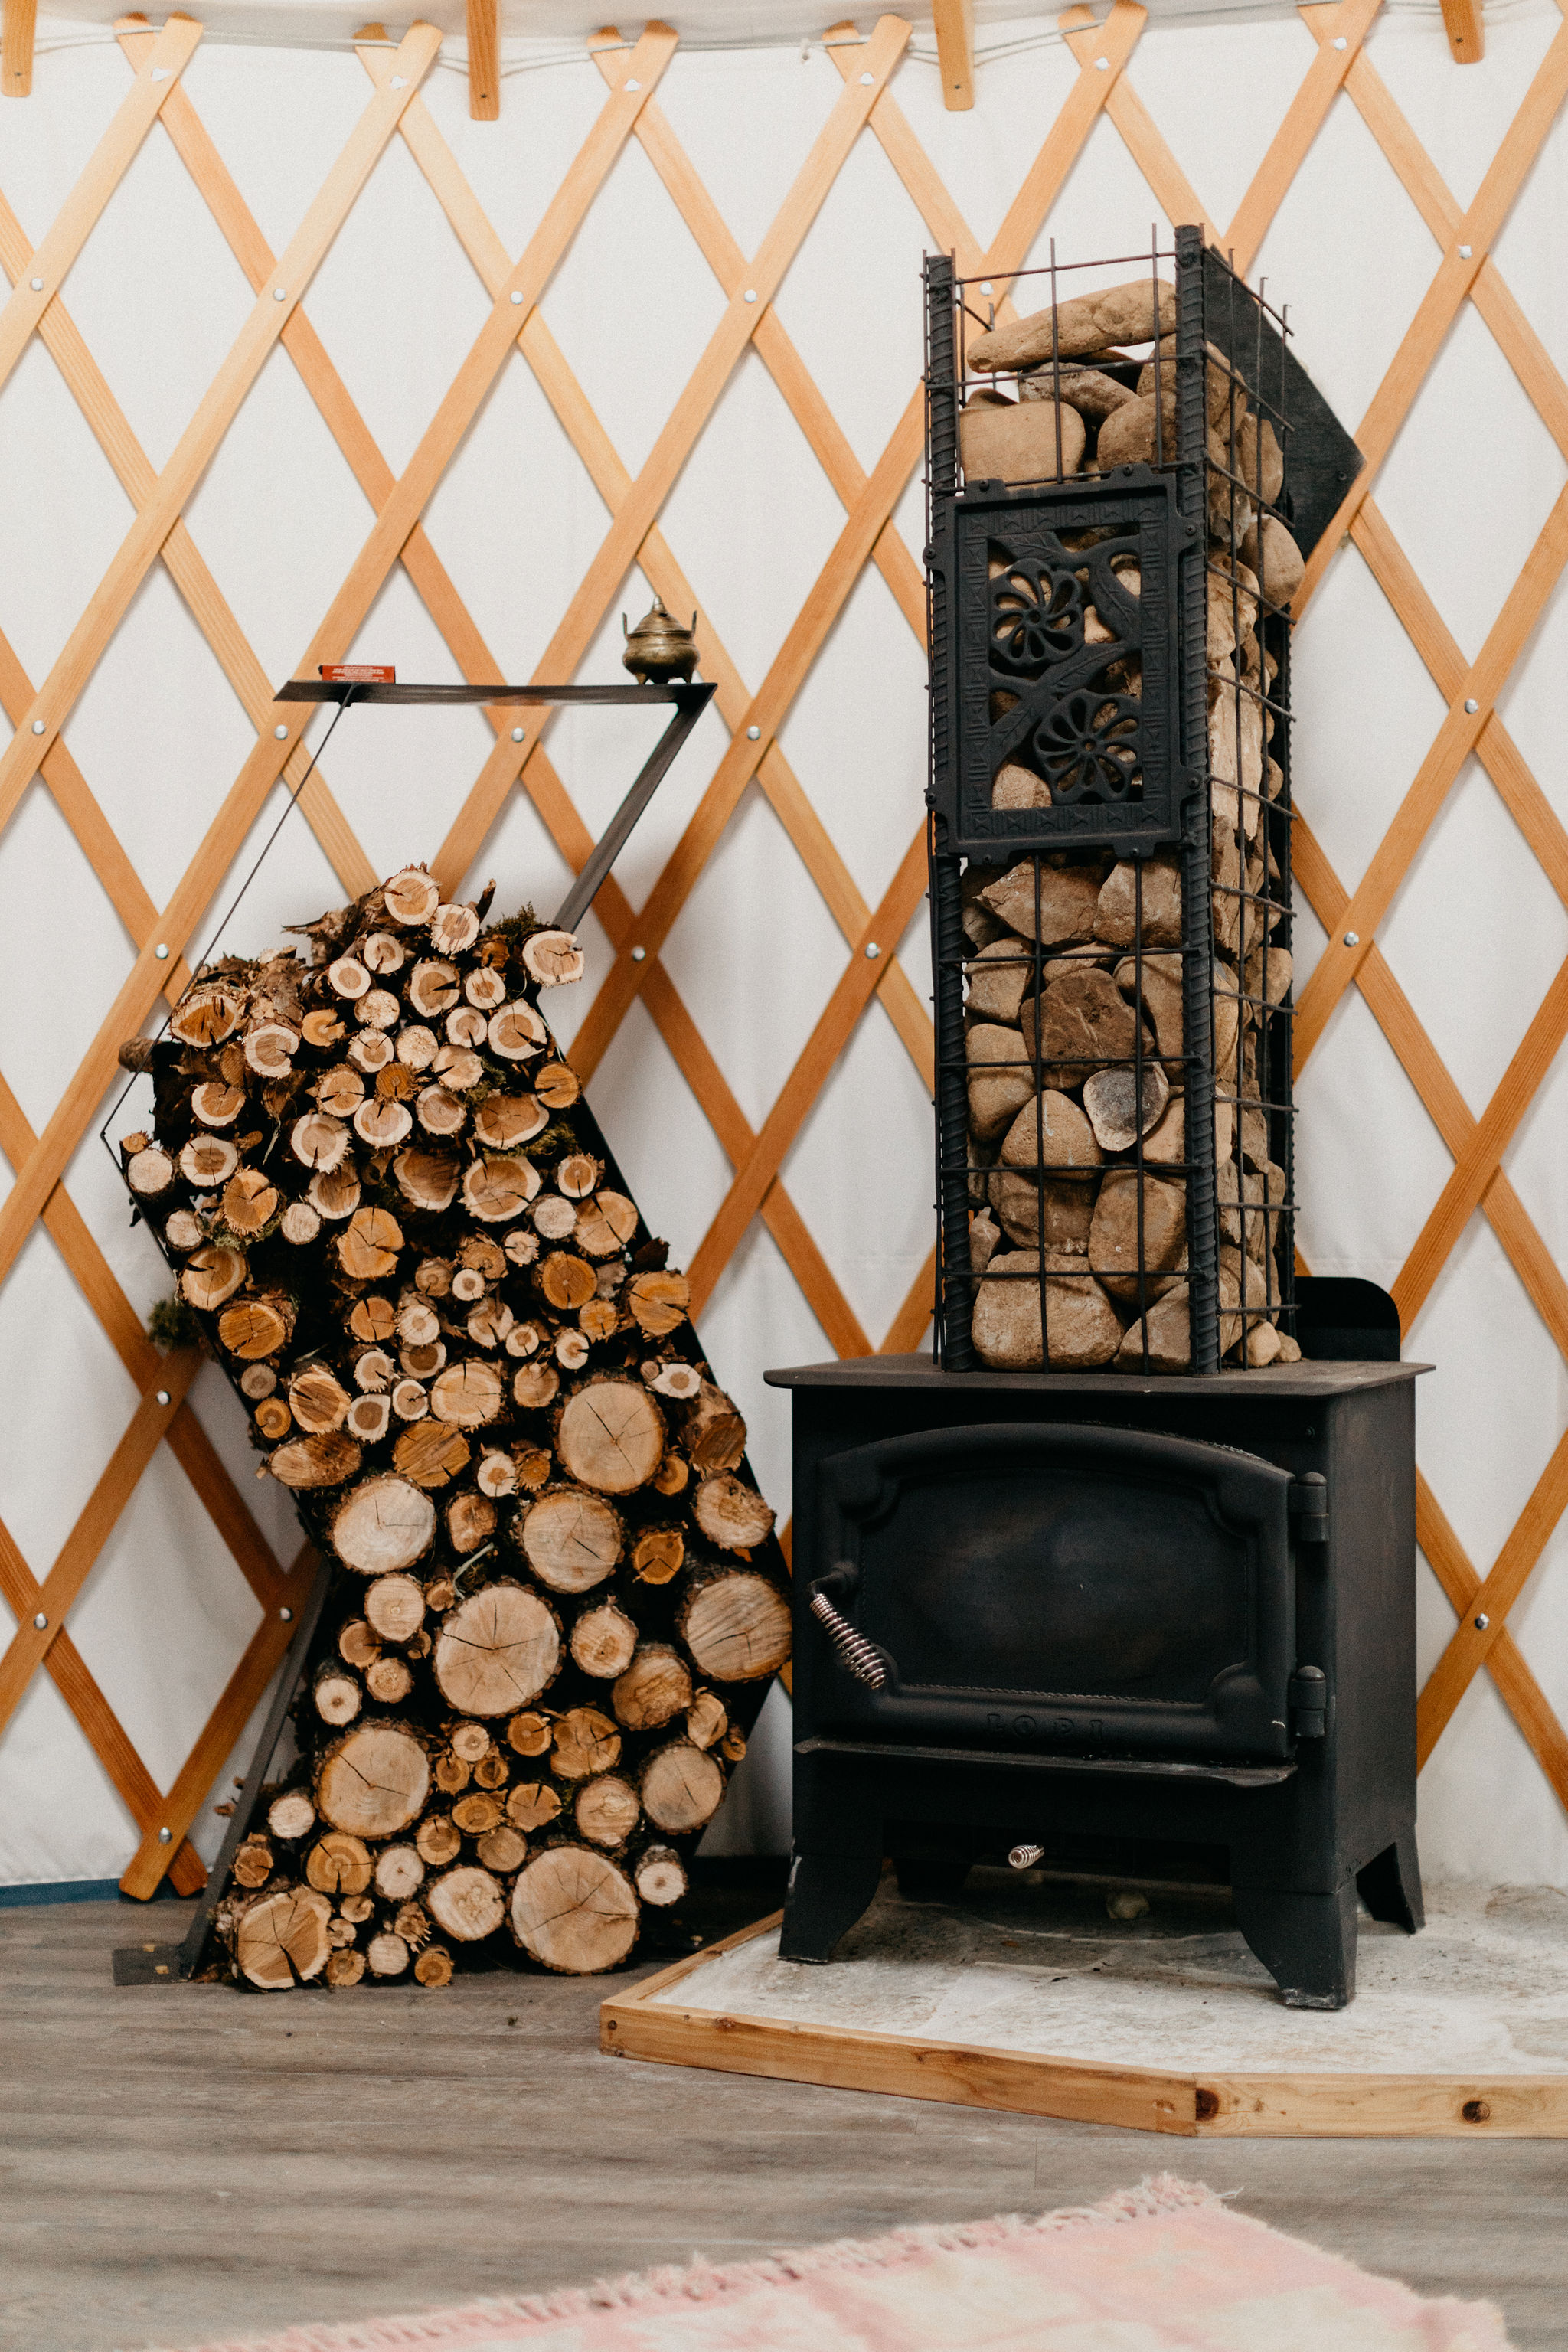 Wood burning stove to keep you cozy at night, especially during the winter months.